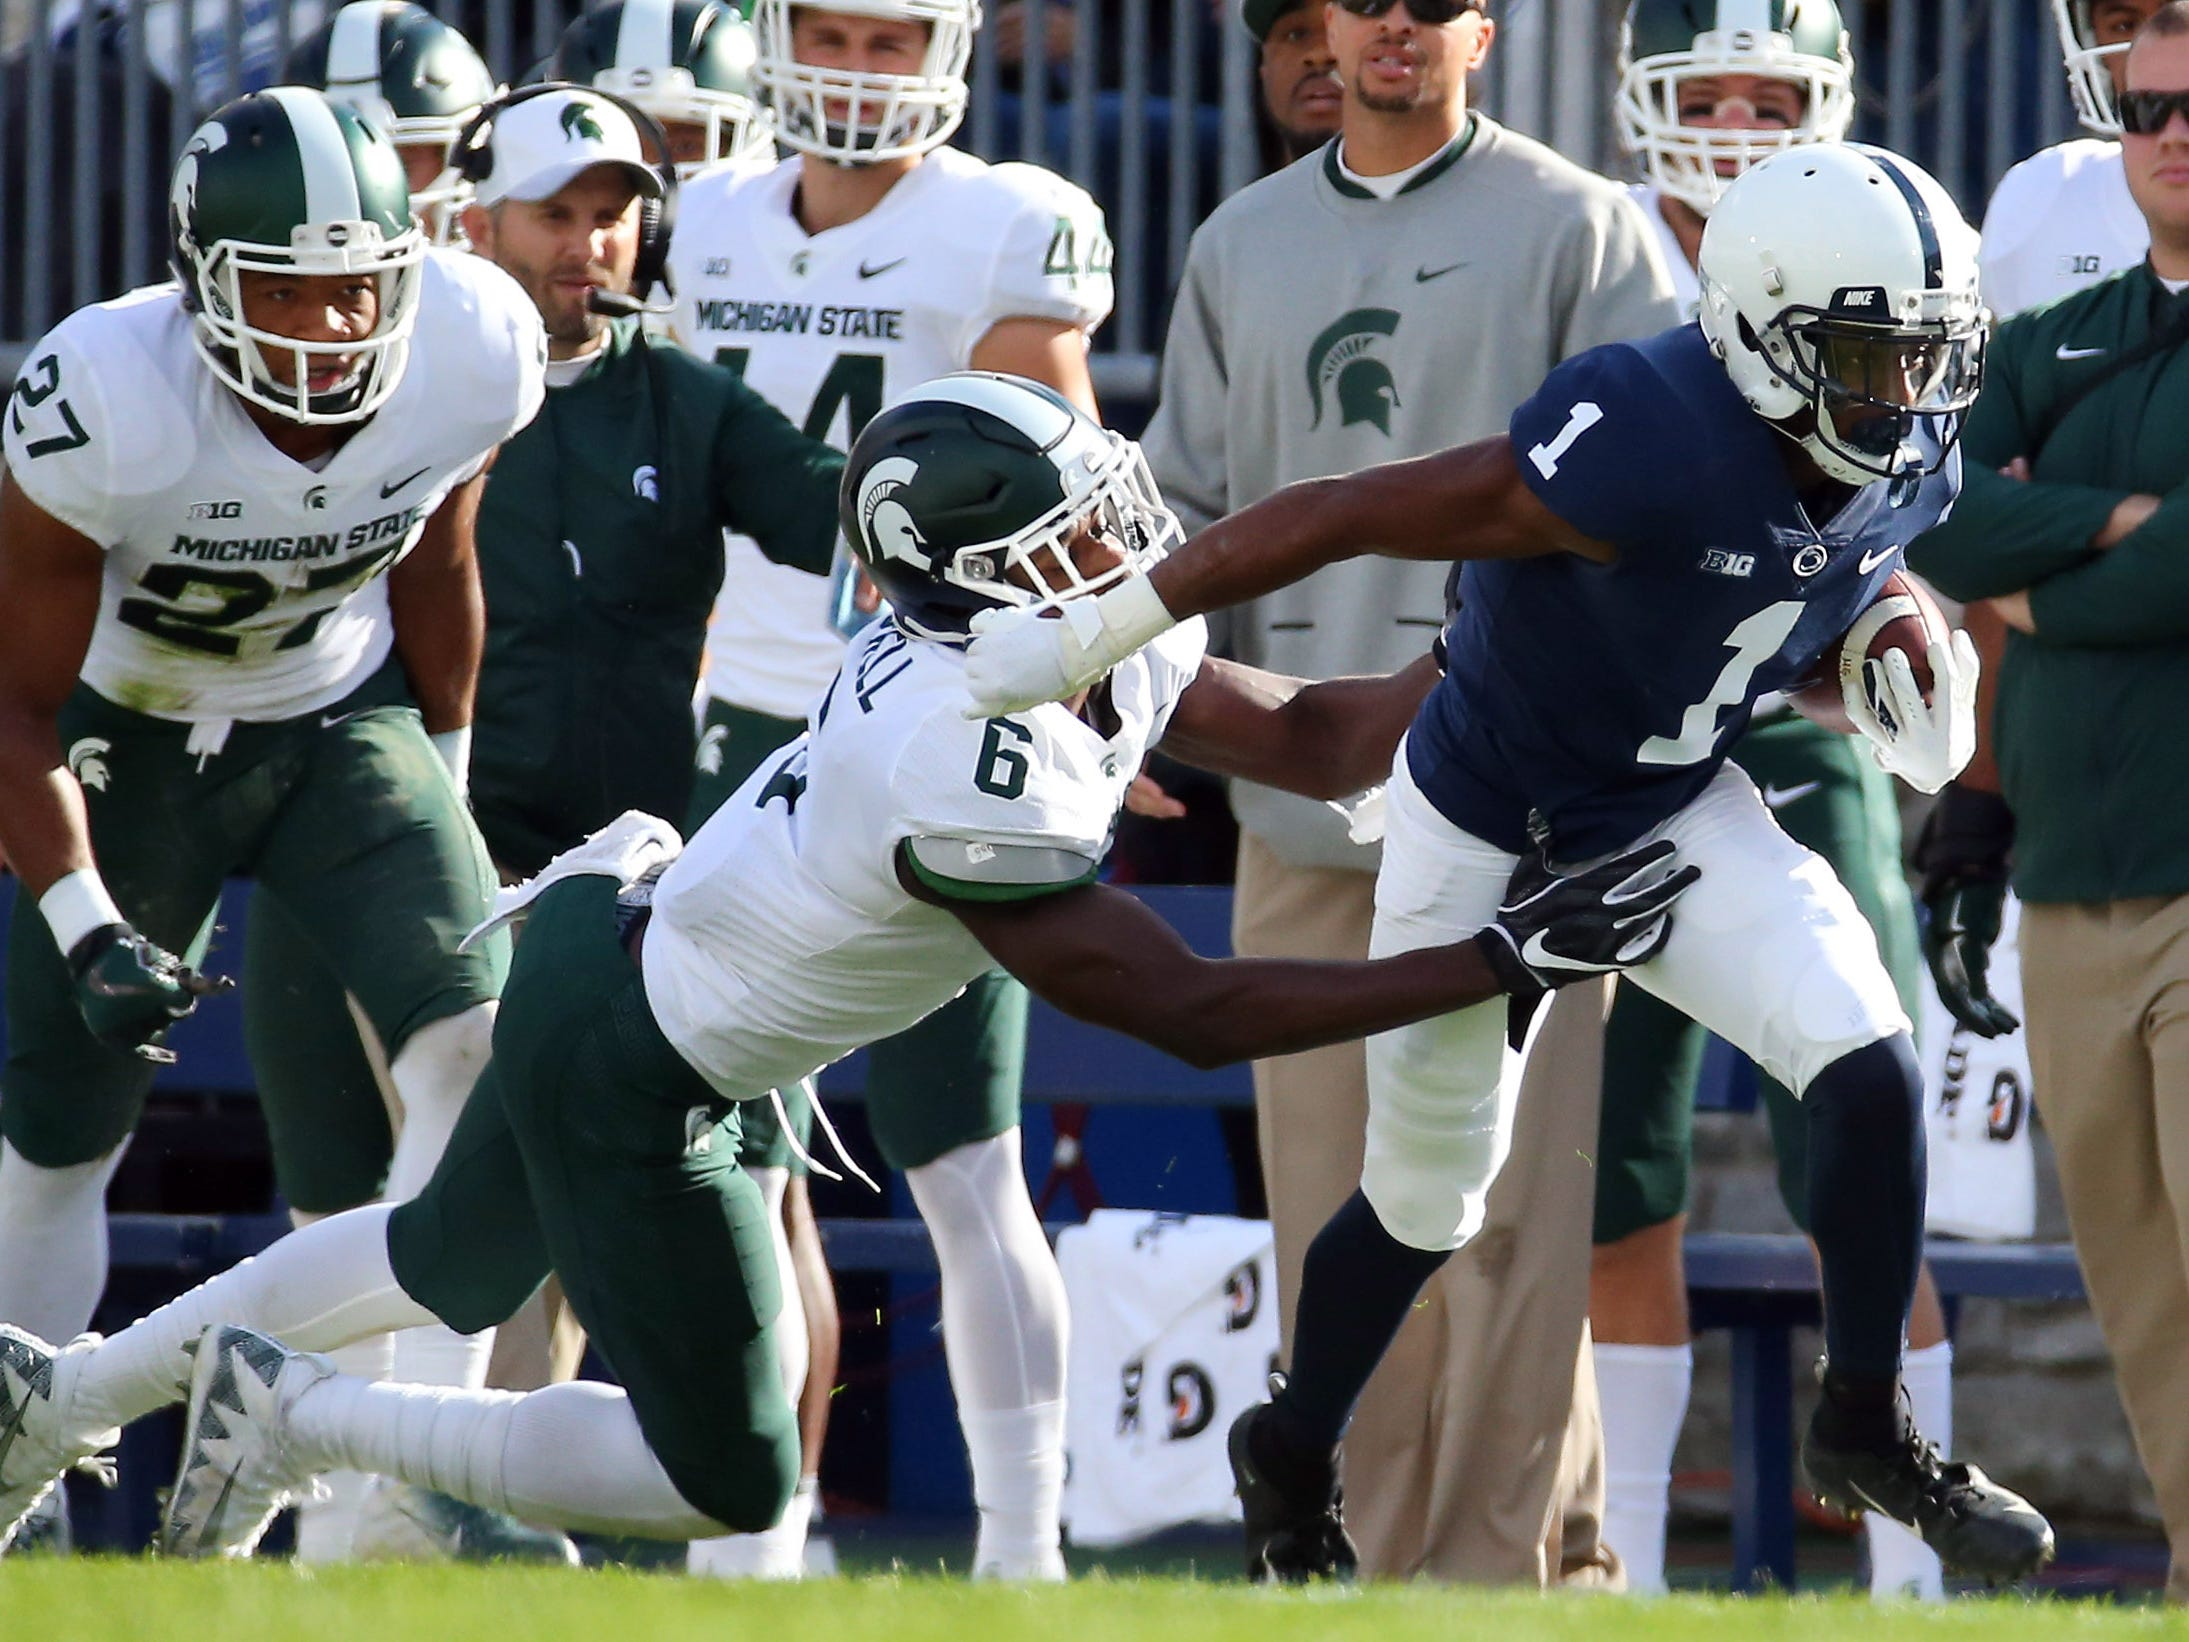 Penn State Nittany Lions wide receiver KJ Hamler (1) runs with the ball after a catch as Michigan State Spartans safety David Dowell (6) defends during the first quarter at Beaver Stadium.